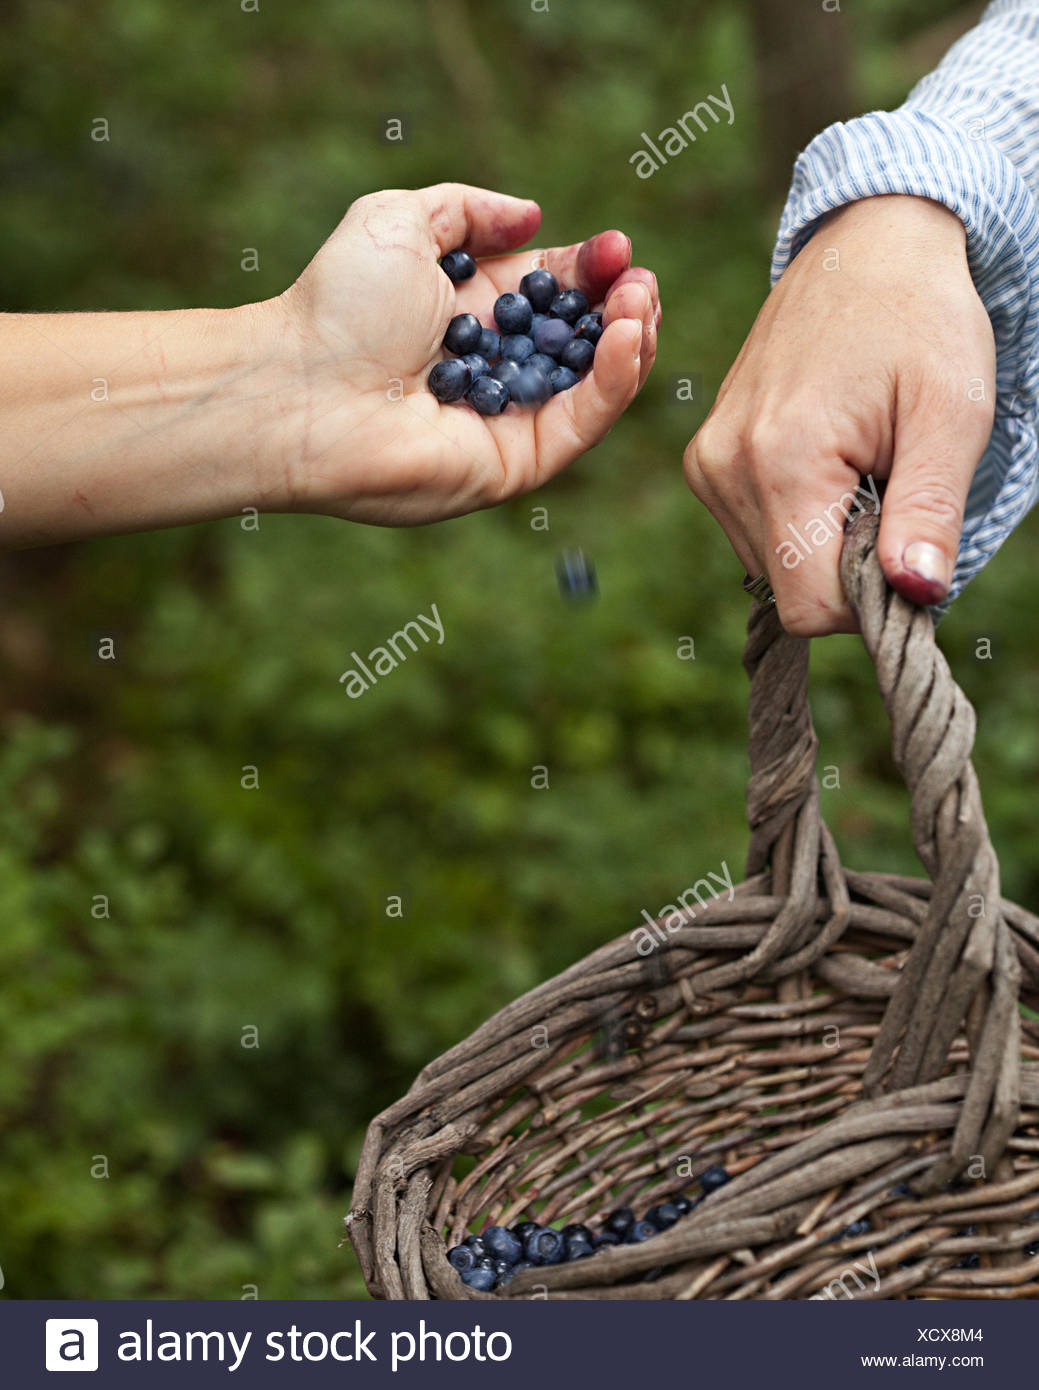 Human hand being poured blueberries into basket - Stock Image